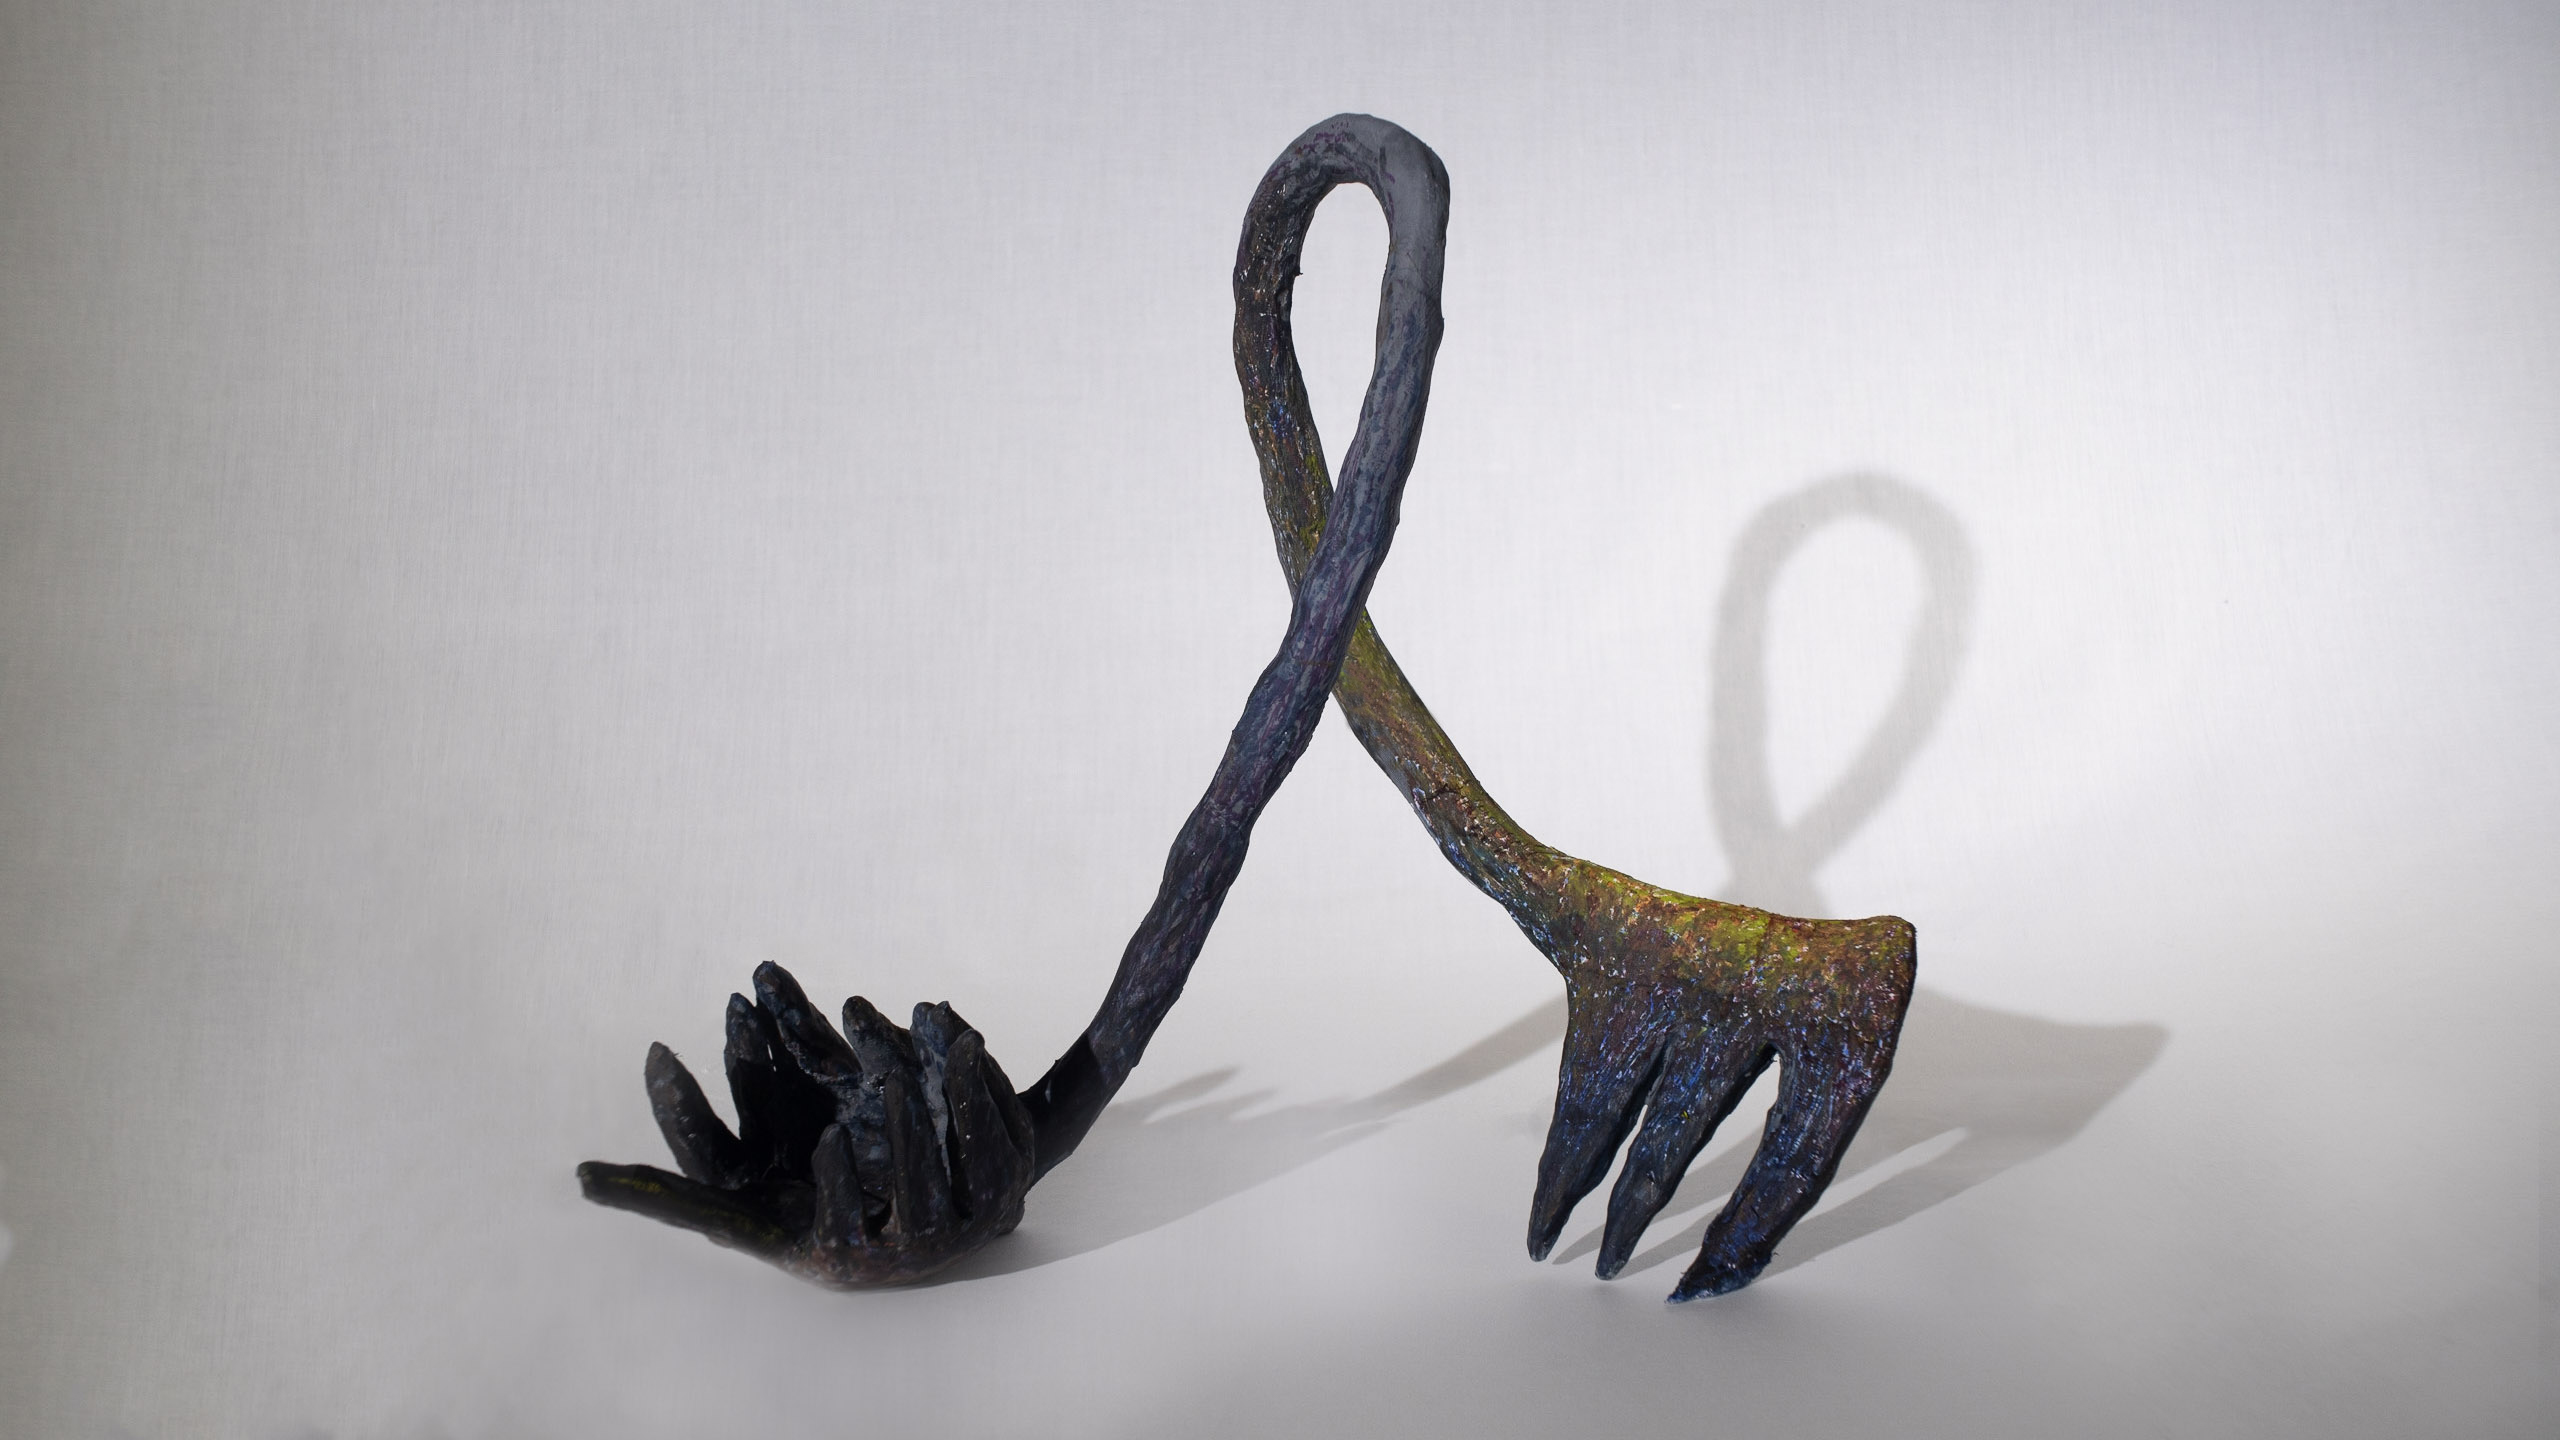 untitled fork and ladle sculpture